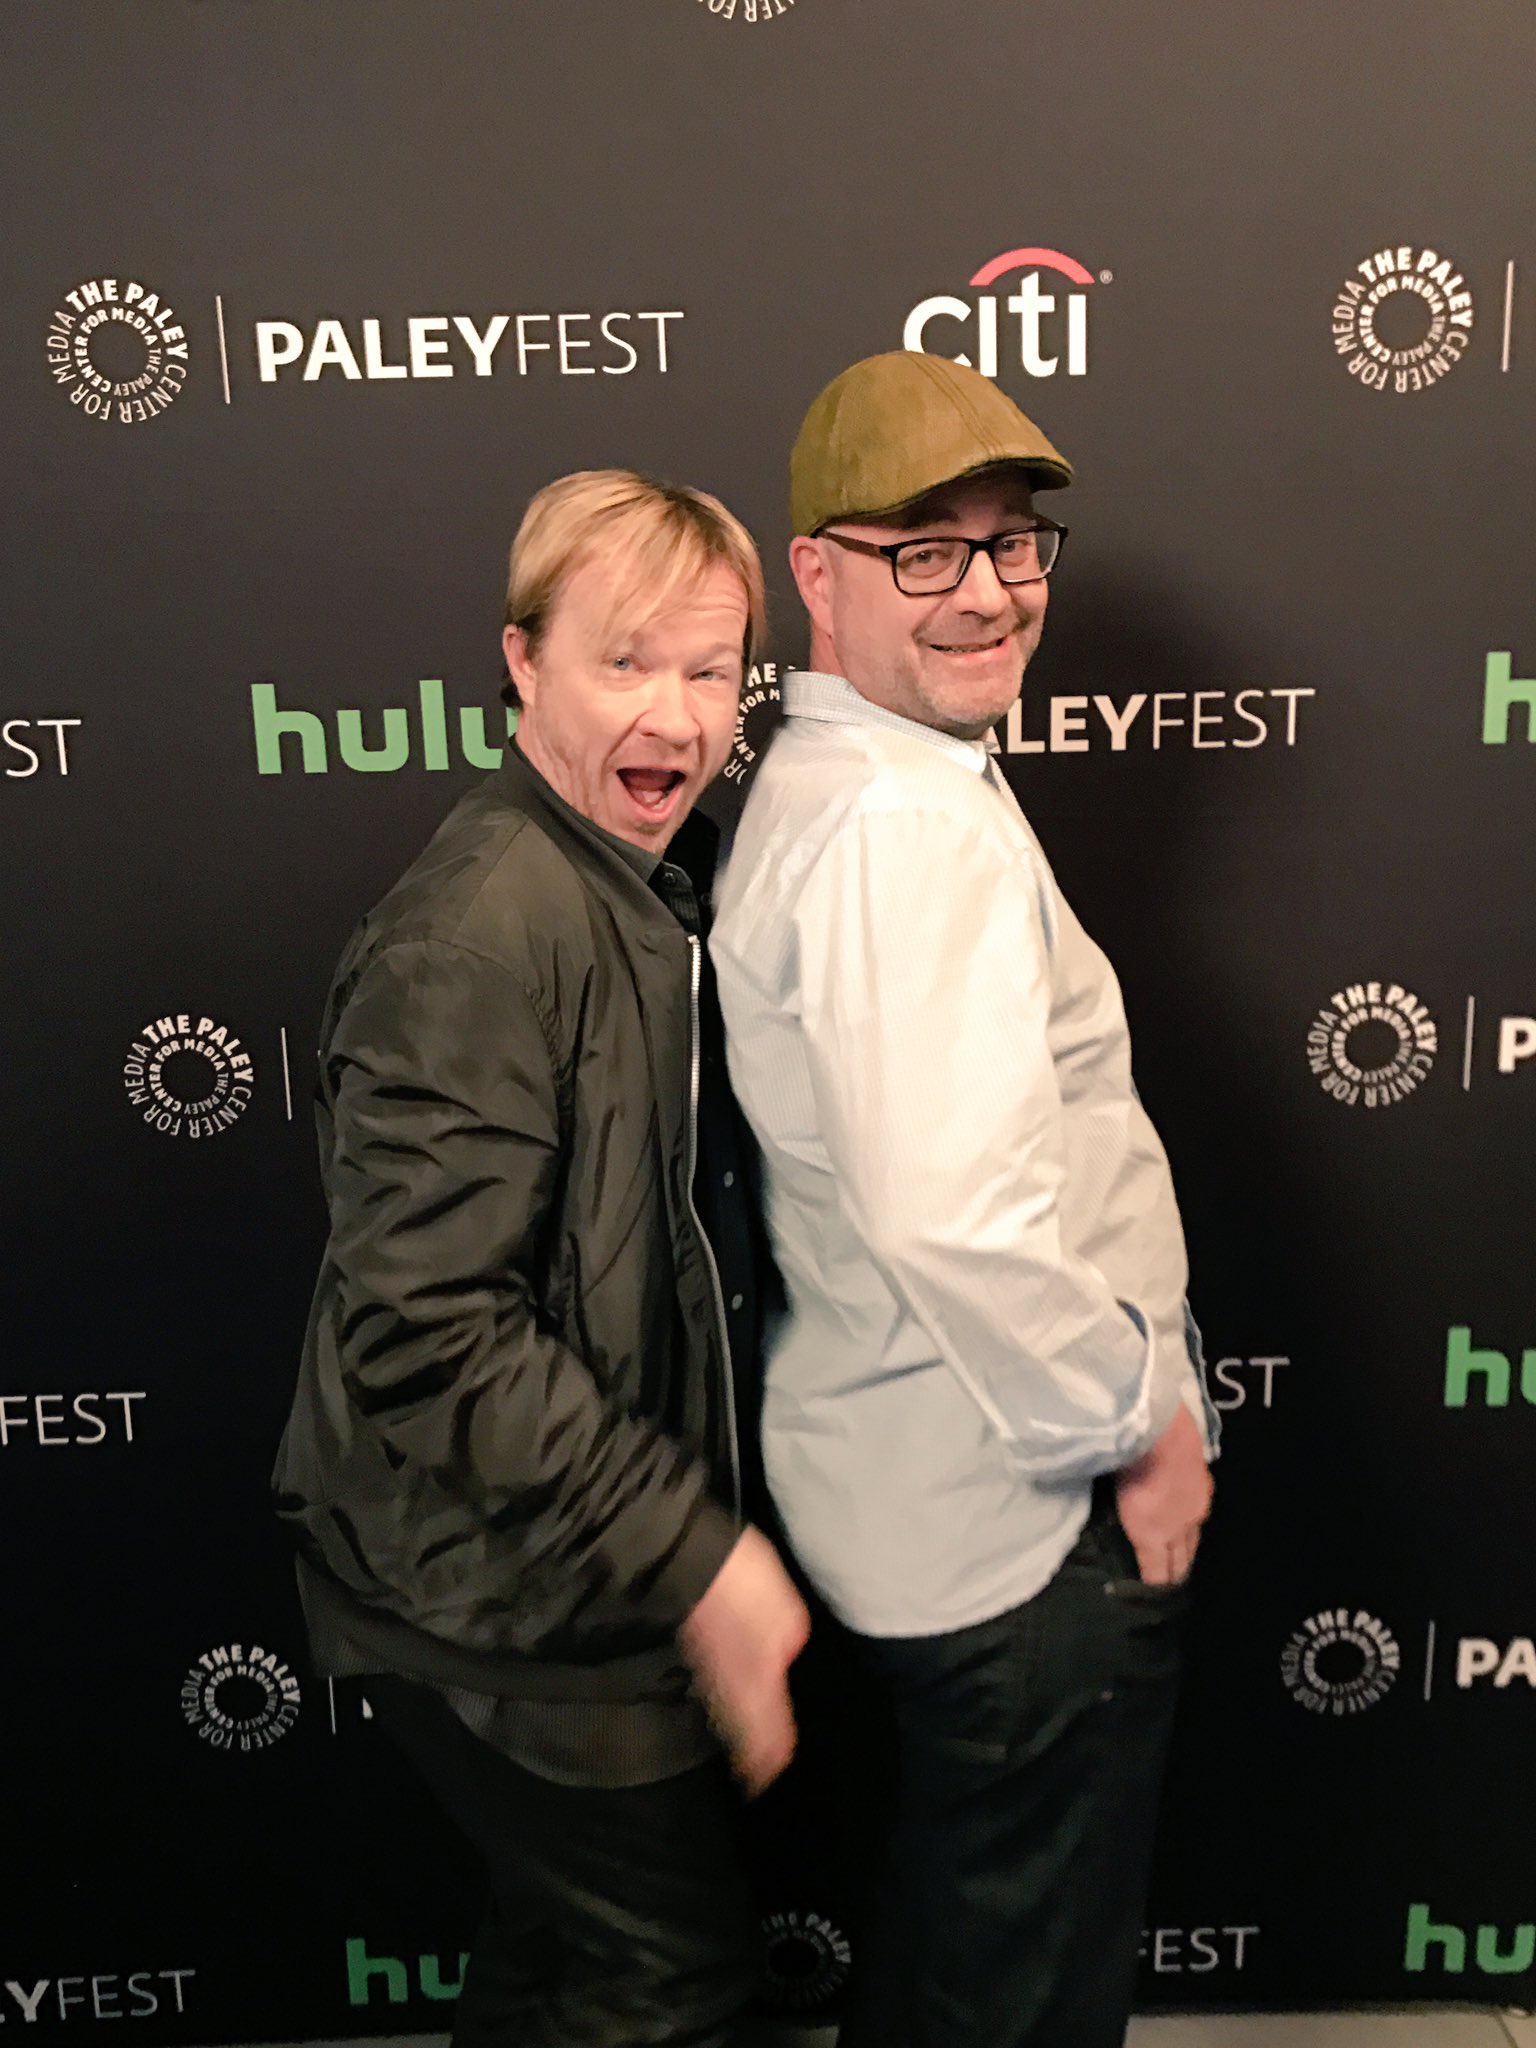 So the @OrphanBlack cast arrived en masse at #PaleyFest! Say hello to co-creators John Fawcett and Graeme Manson being cheeky! 📺👯👯😂 https://t.co/qBCuWHpvSJ